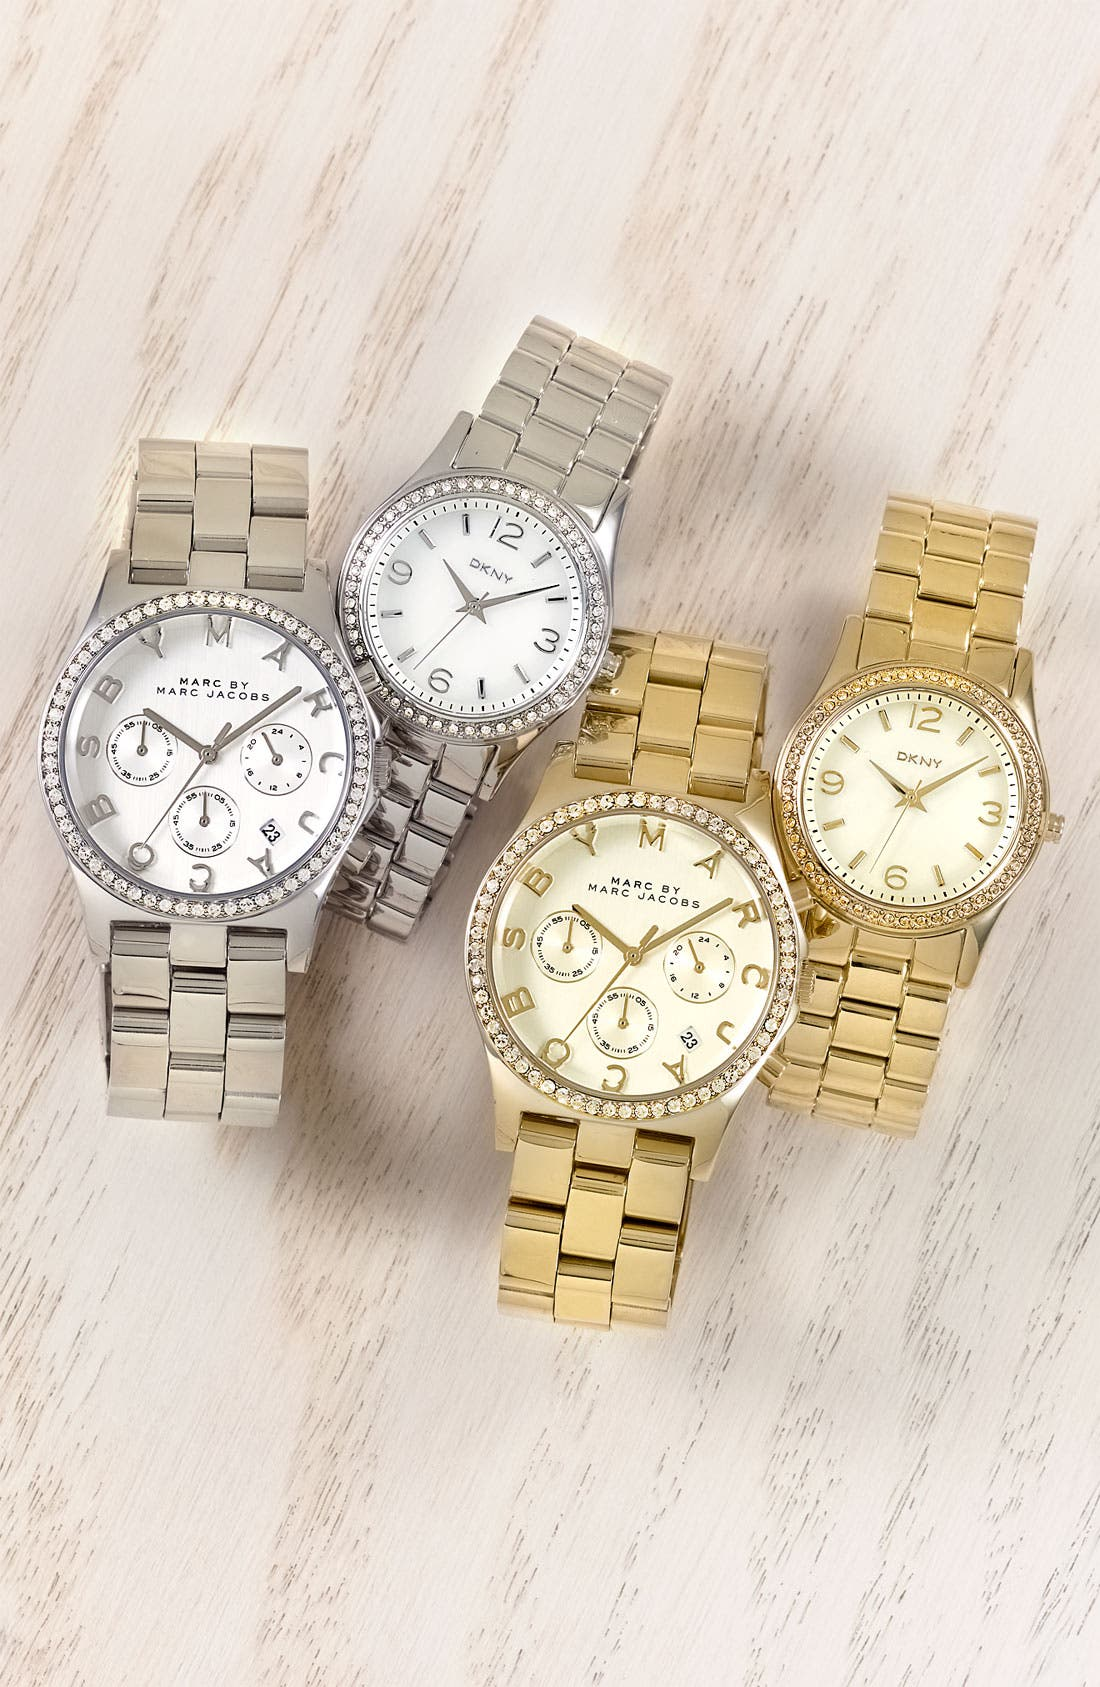 MARC JACOBS, 'Henry' Chronograph & Crystal Topring Watch, 40mm, Alternate thumbnail 4, color, 040